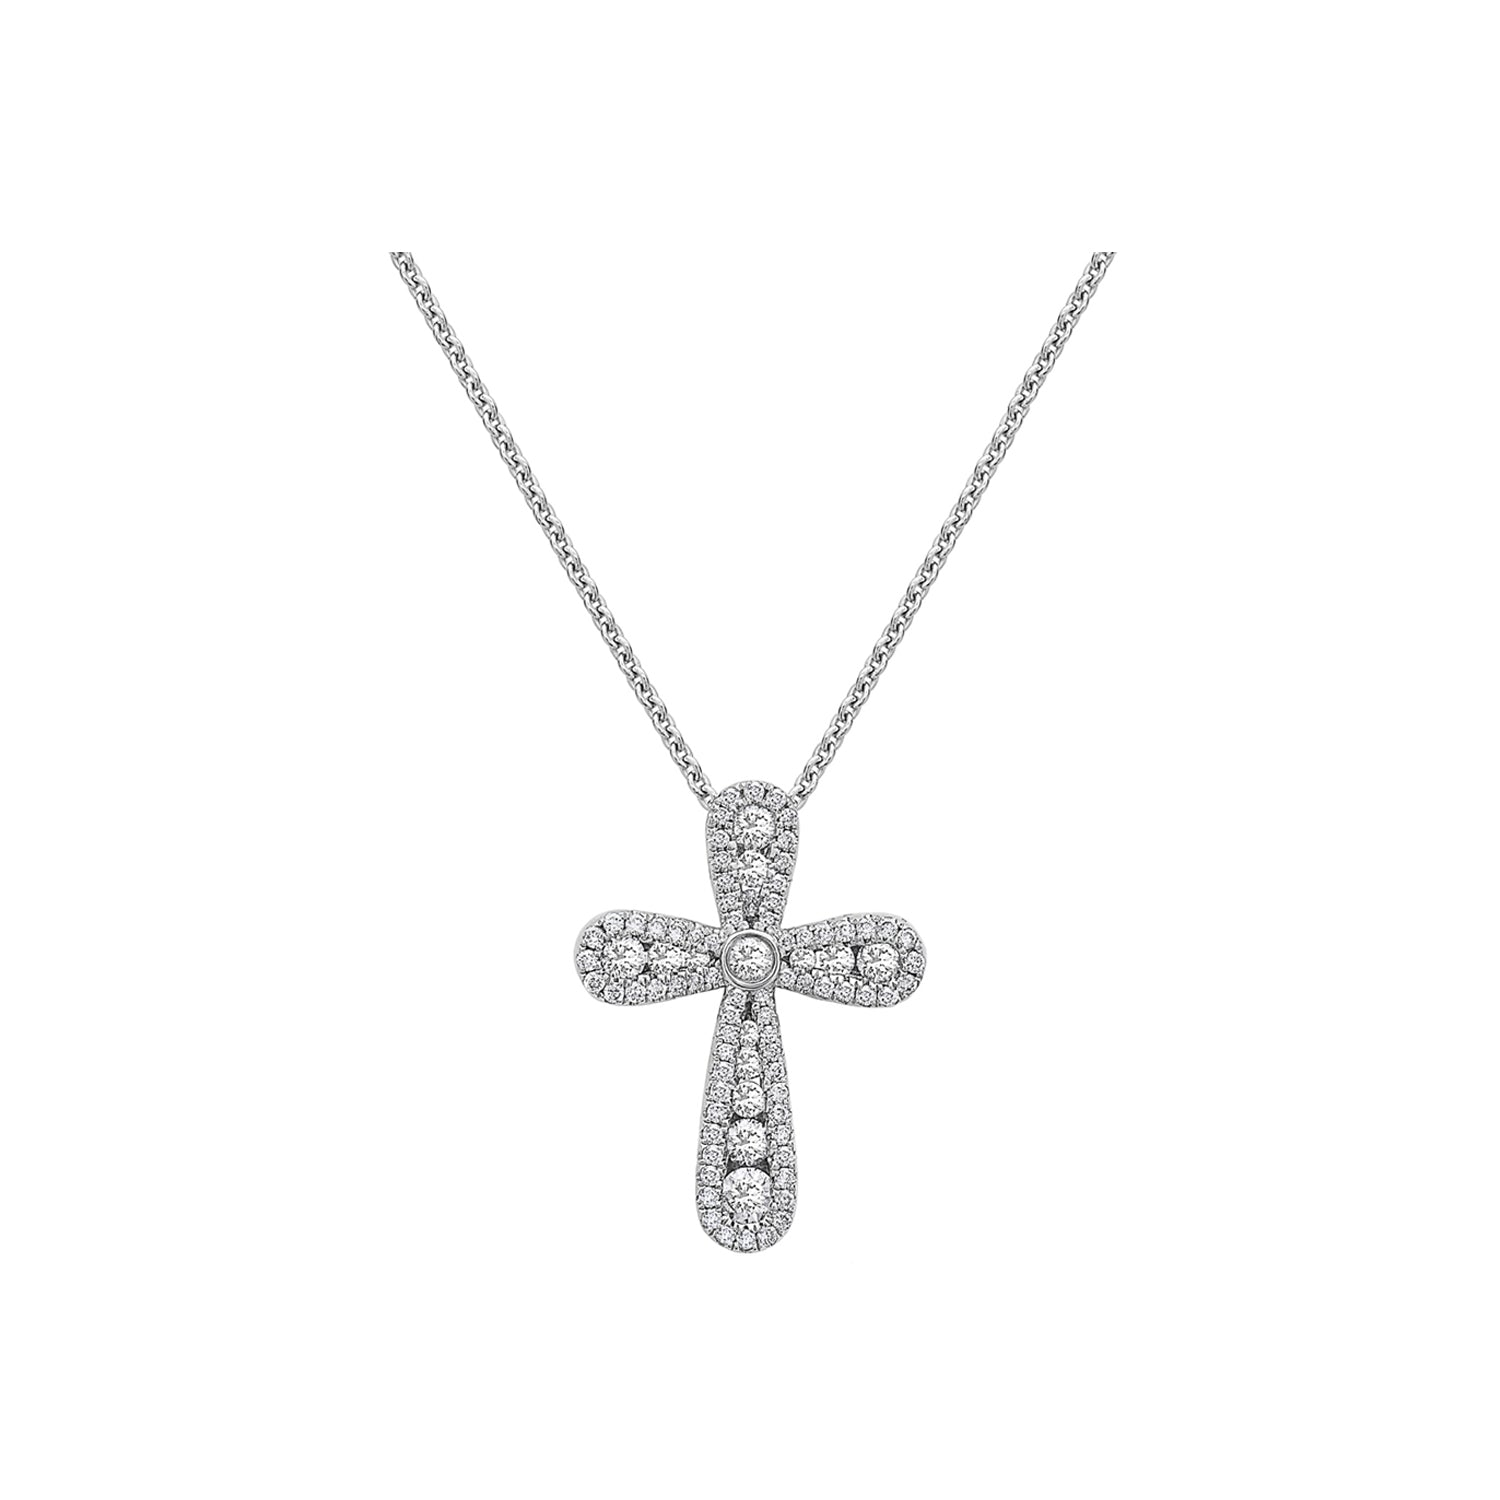 Charles Krypell 18k White Gold Precious Pastel Cross Necklace